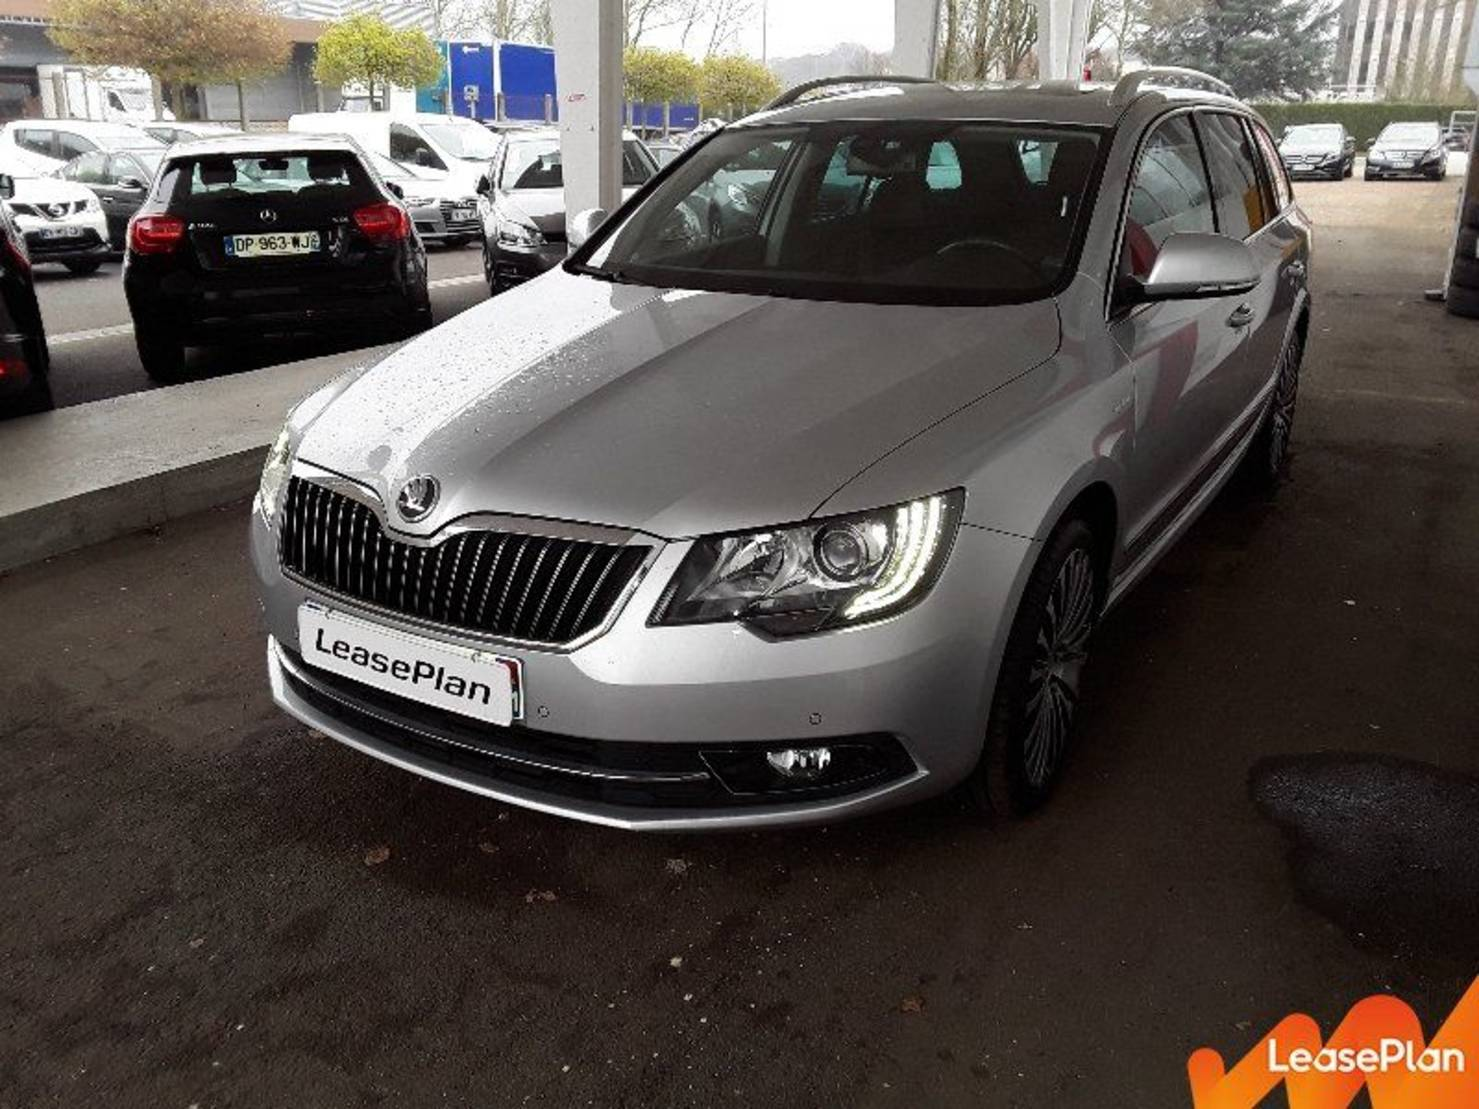 Škoda Superb 2.0 TDI 140 GreenTec, Laurin & Klement DSG detail2